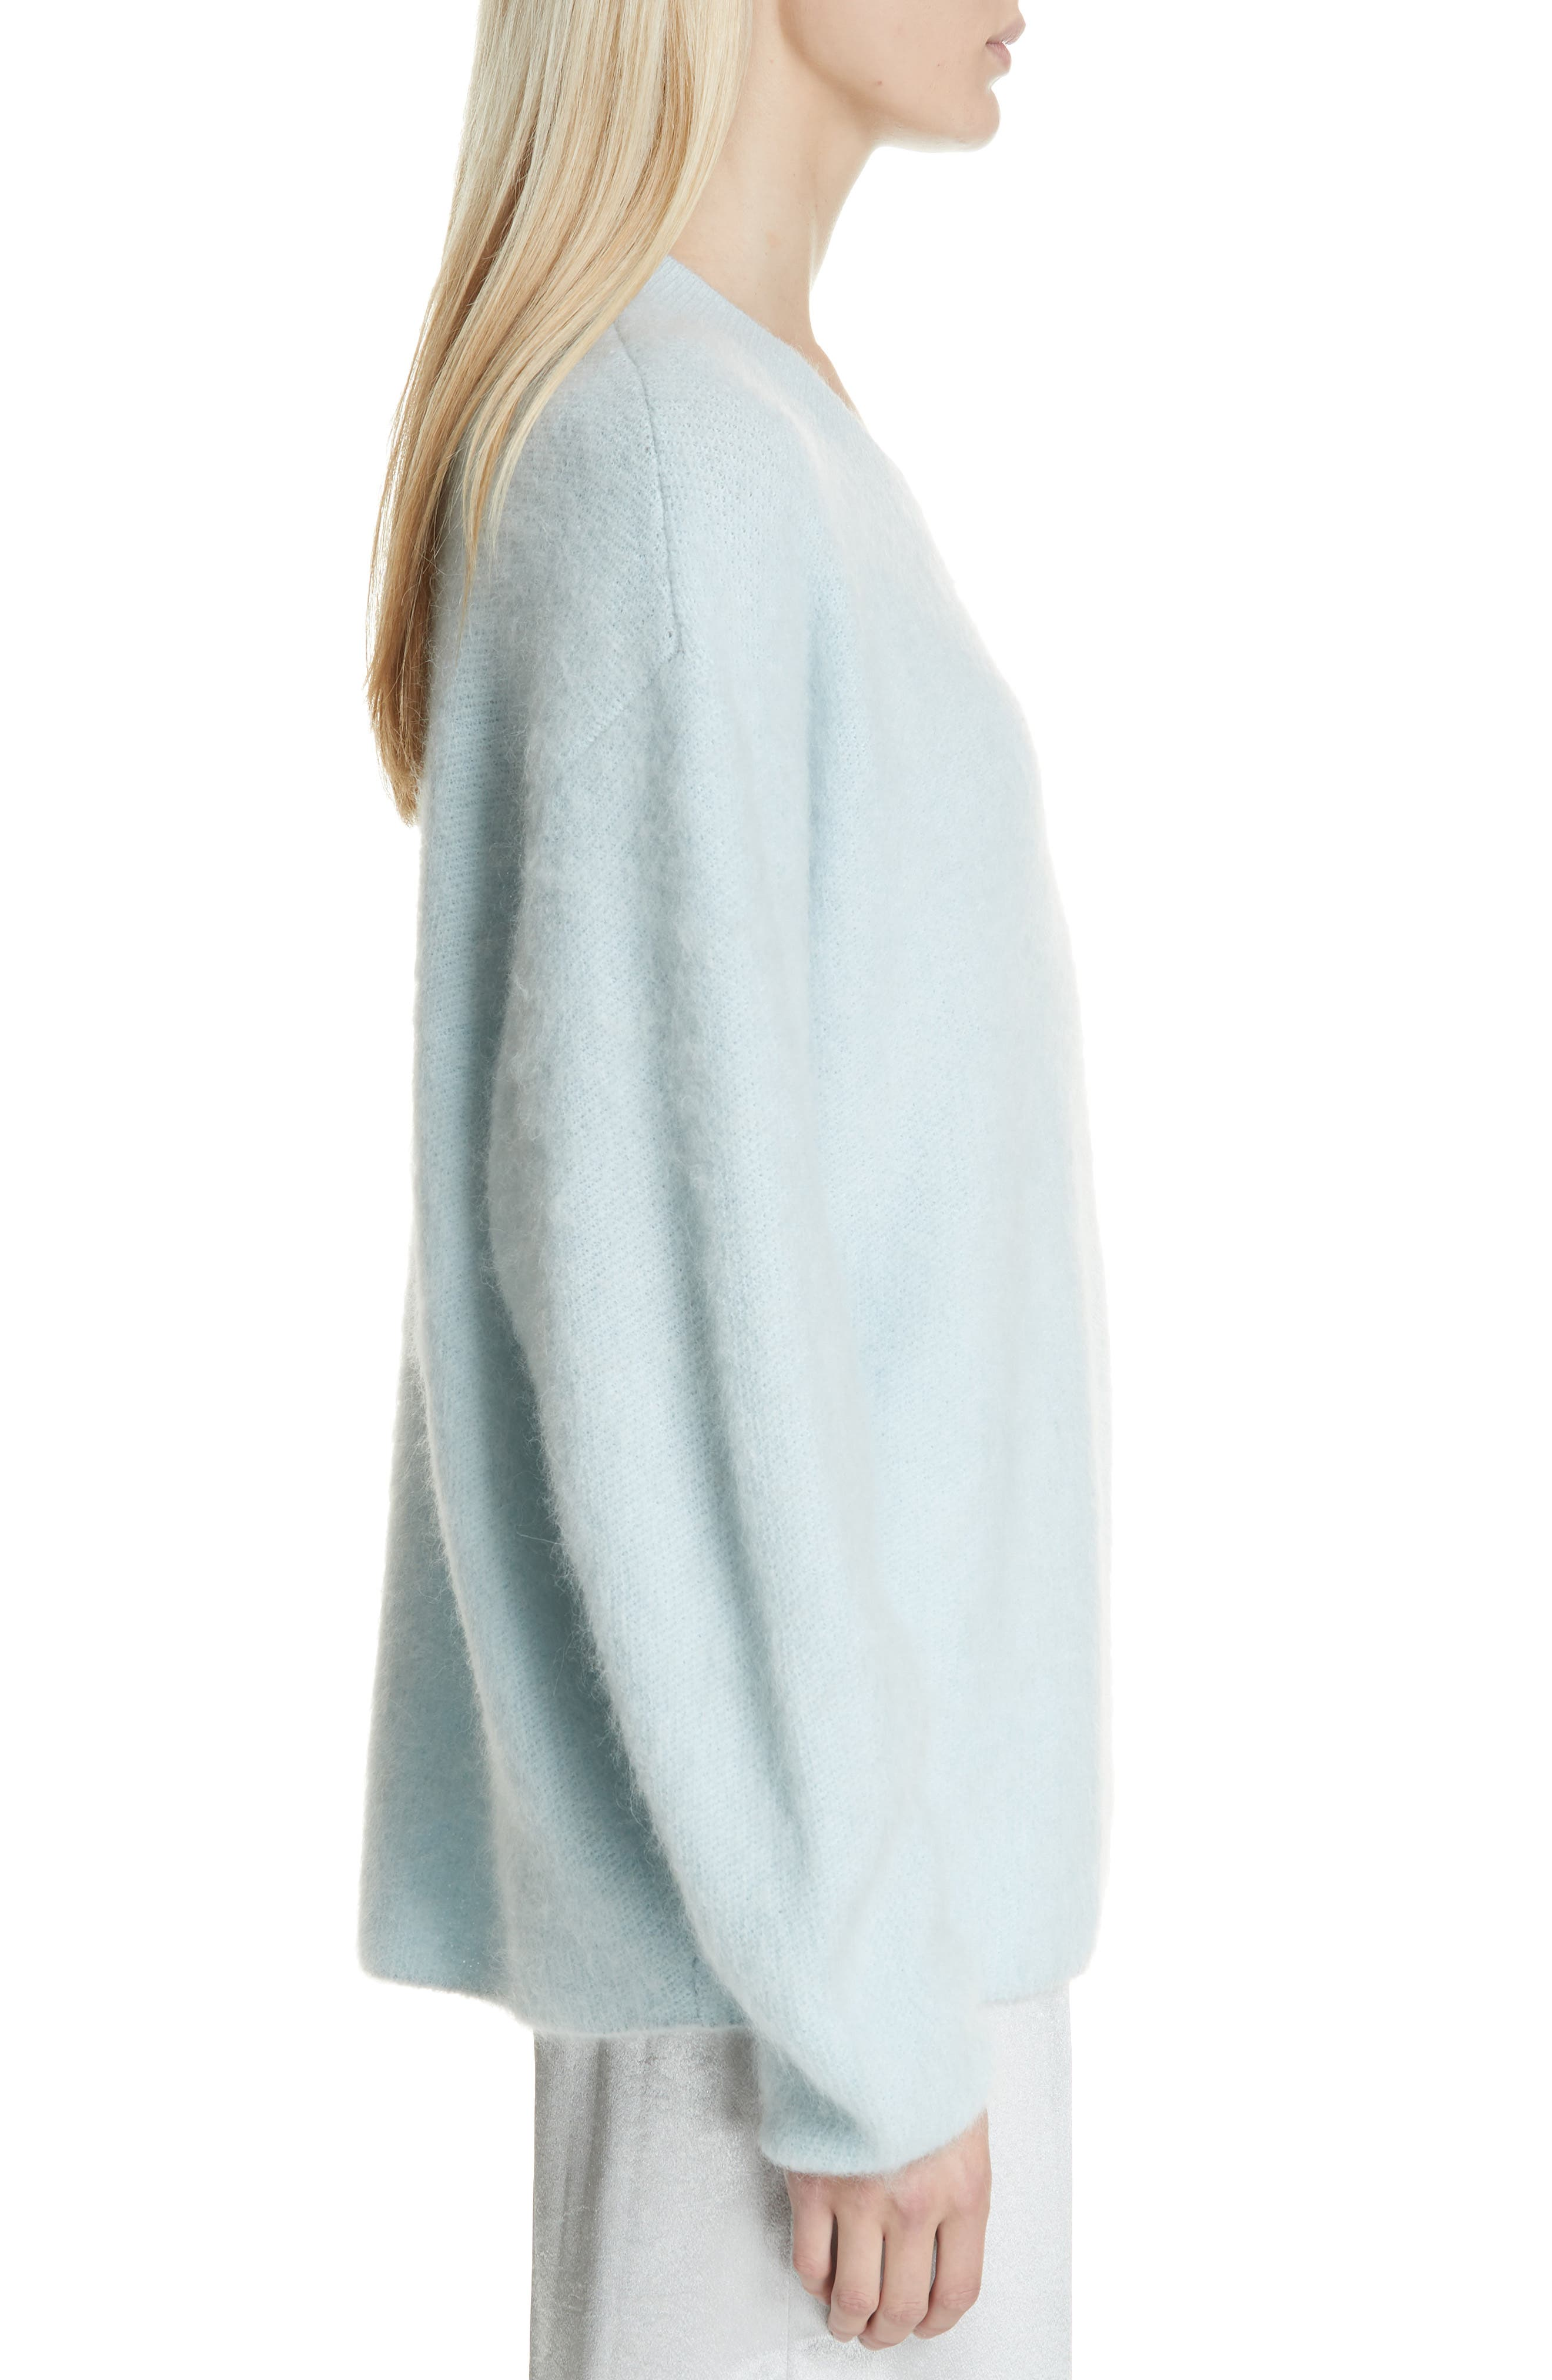 VINCE, Oversize Sweater, Alternate thumbnail 3, color, ICE/ BLUE